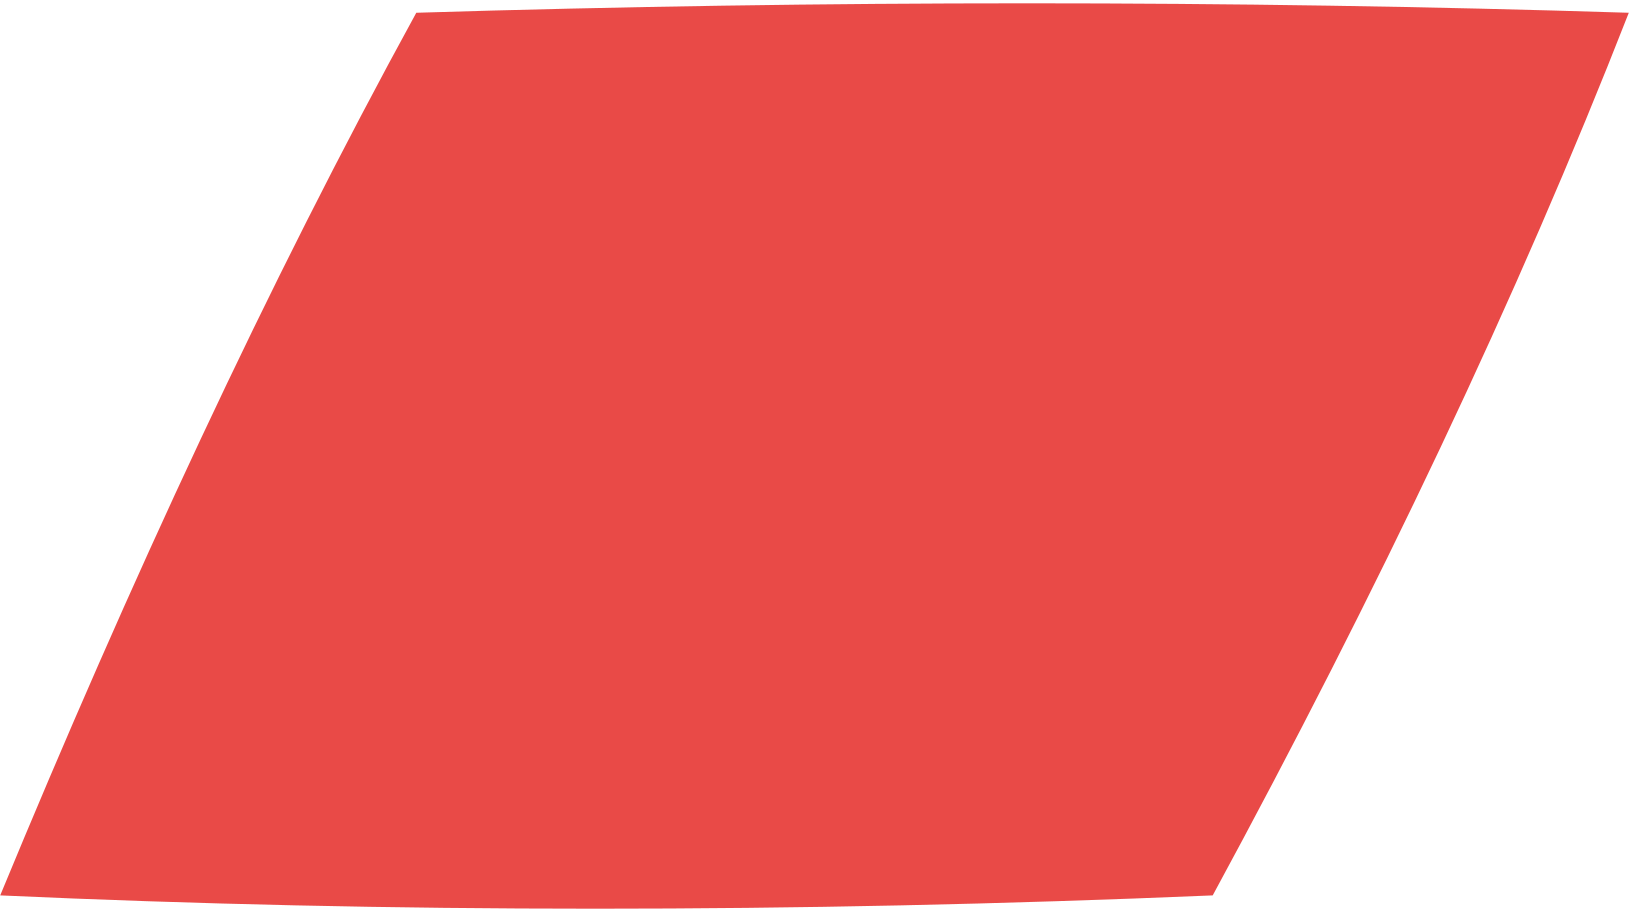 style parallelogram red Vector images in PNG and SVG   Icons8 Illustrations